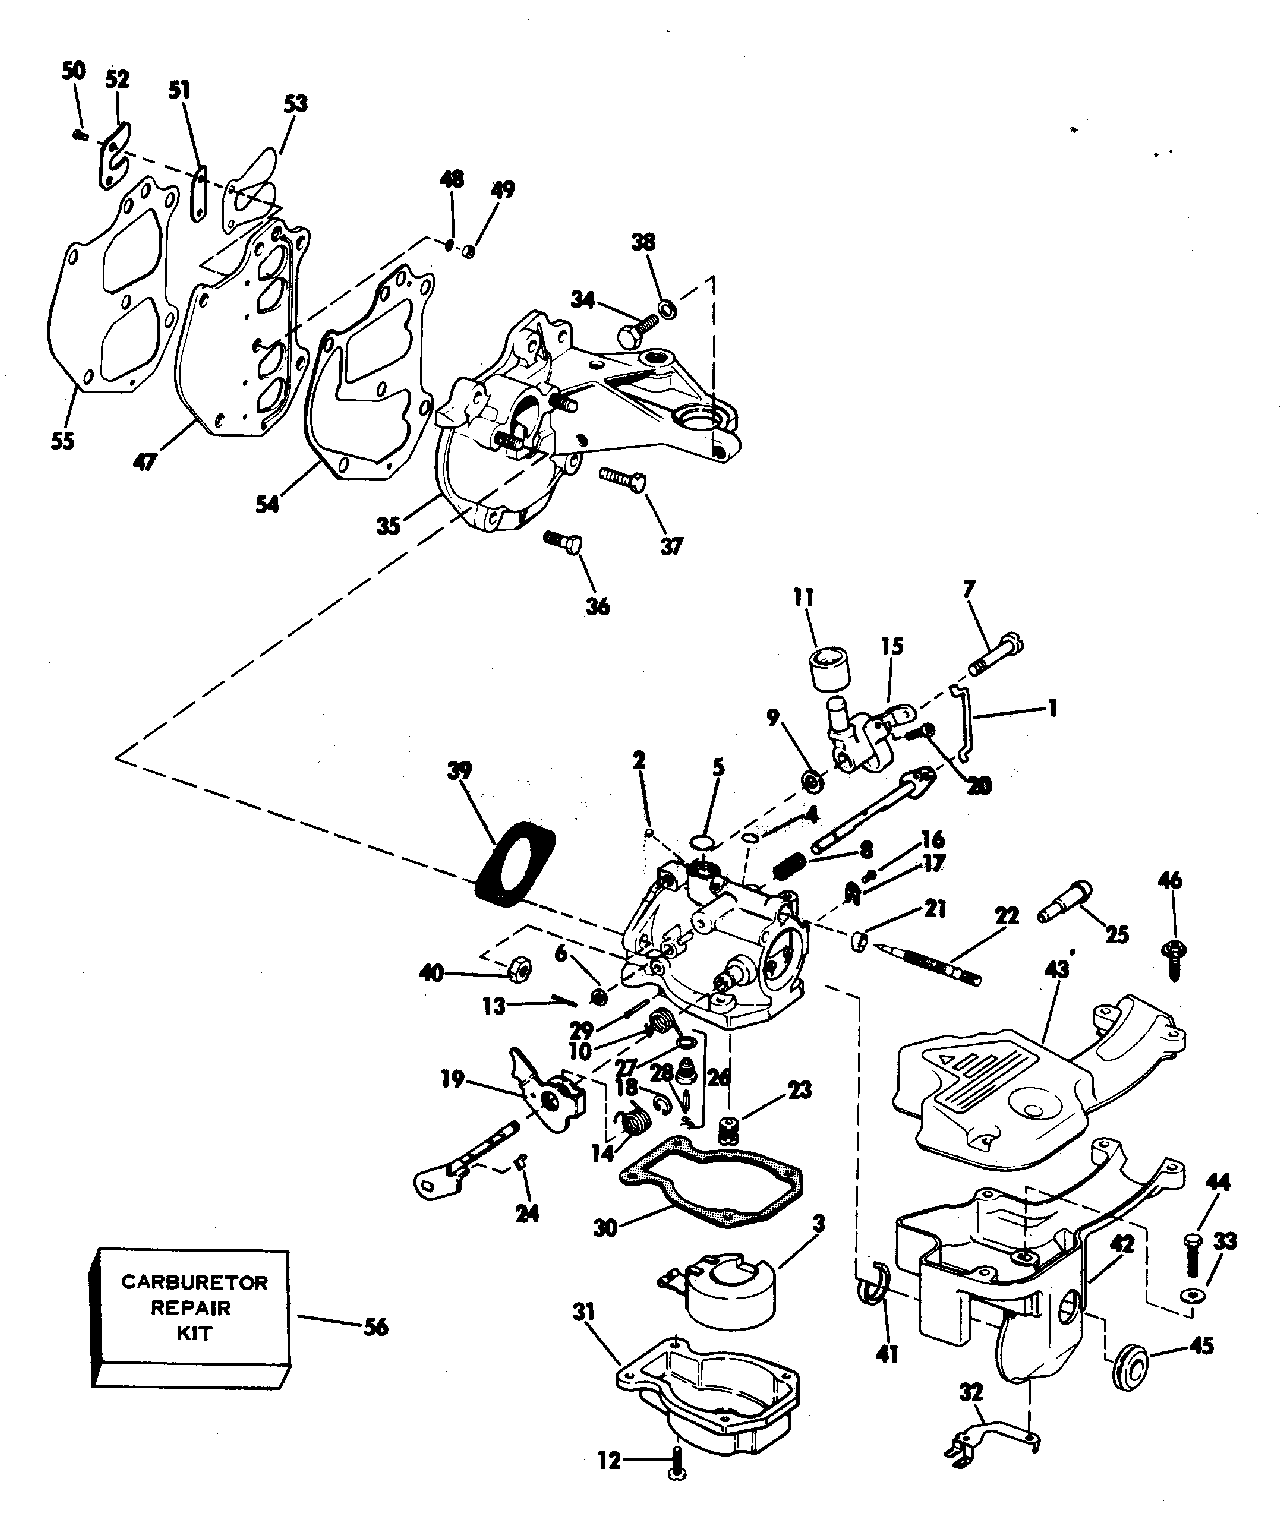 1989 15 Hp Evinrude Fuel Pump Diagram Wiring Great Installation Of 1970 25 Johnson Todays Rh 17 9 12 1813weddingbarn Com Parts